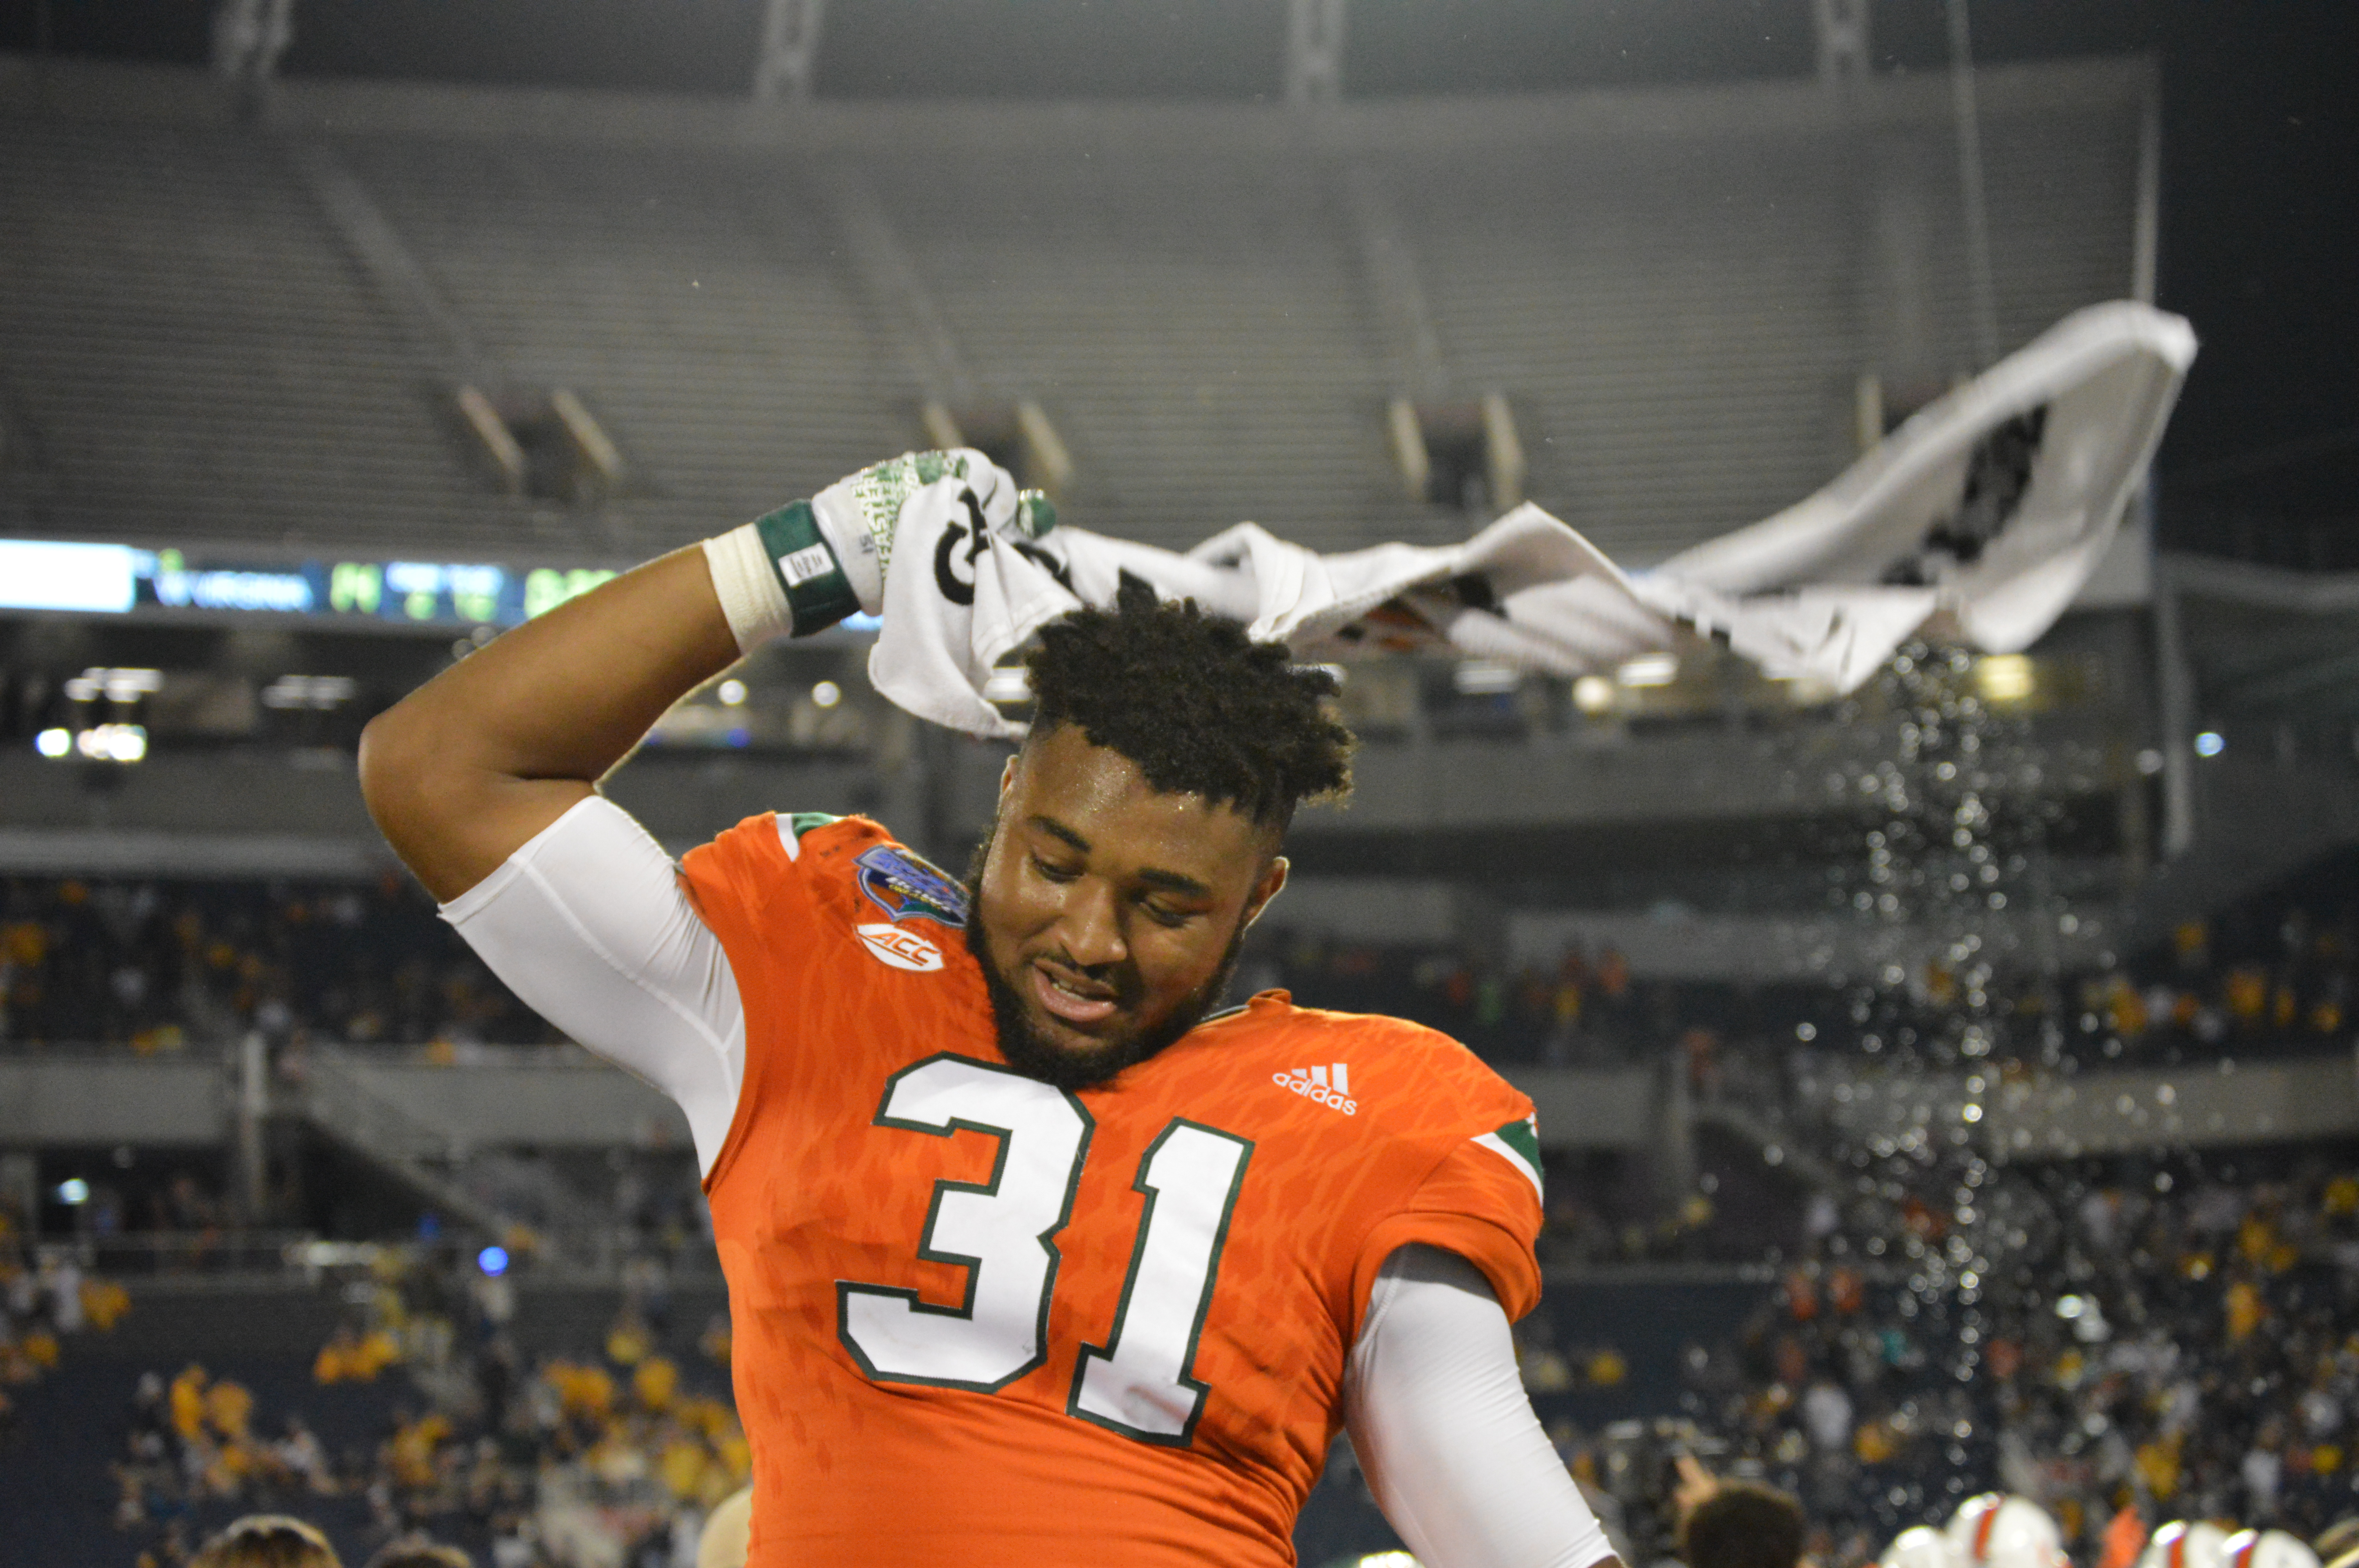 D Jax celebrates Miami's first bowl win in .... like forever